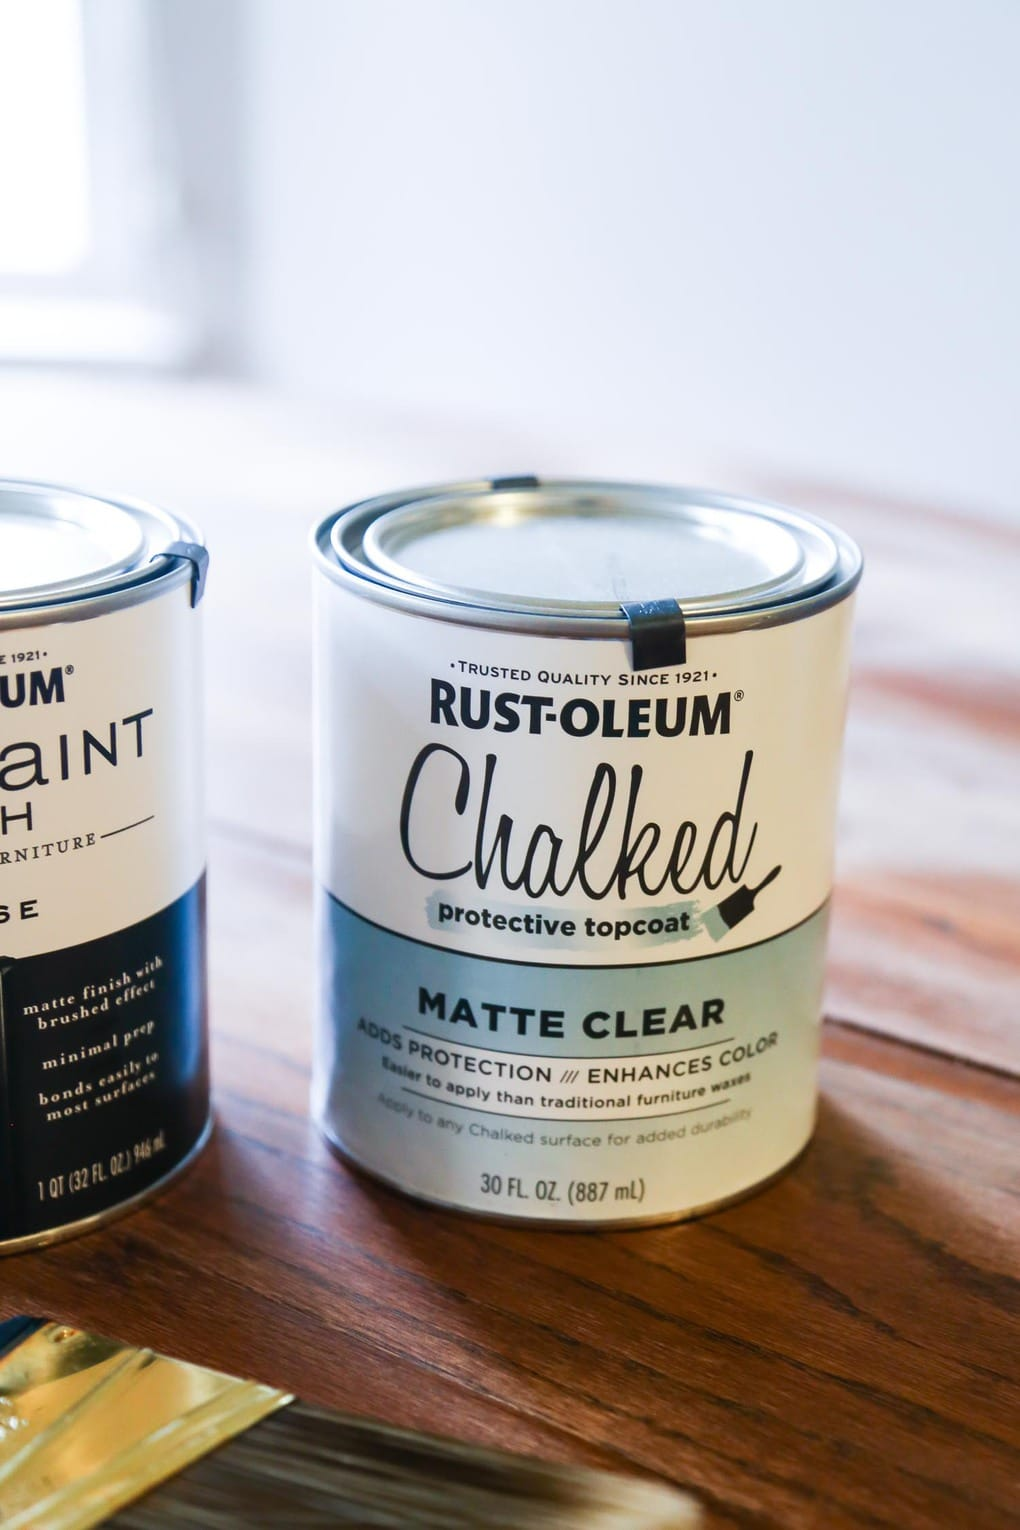 Rustoleum Chalked Protective Top Coat